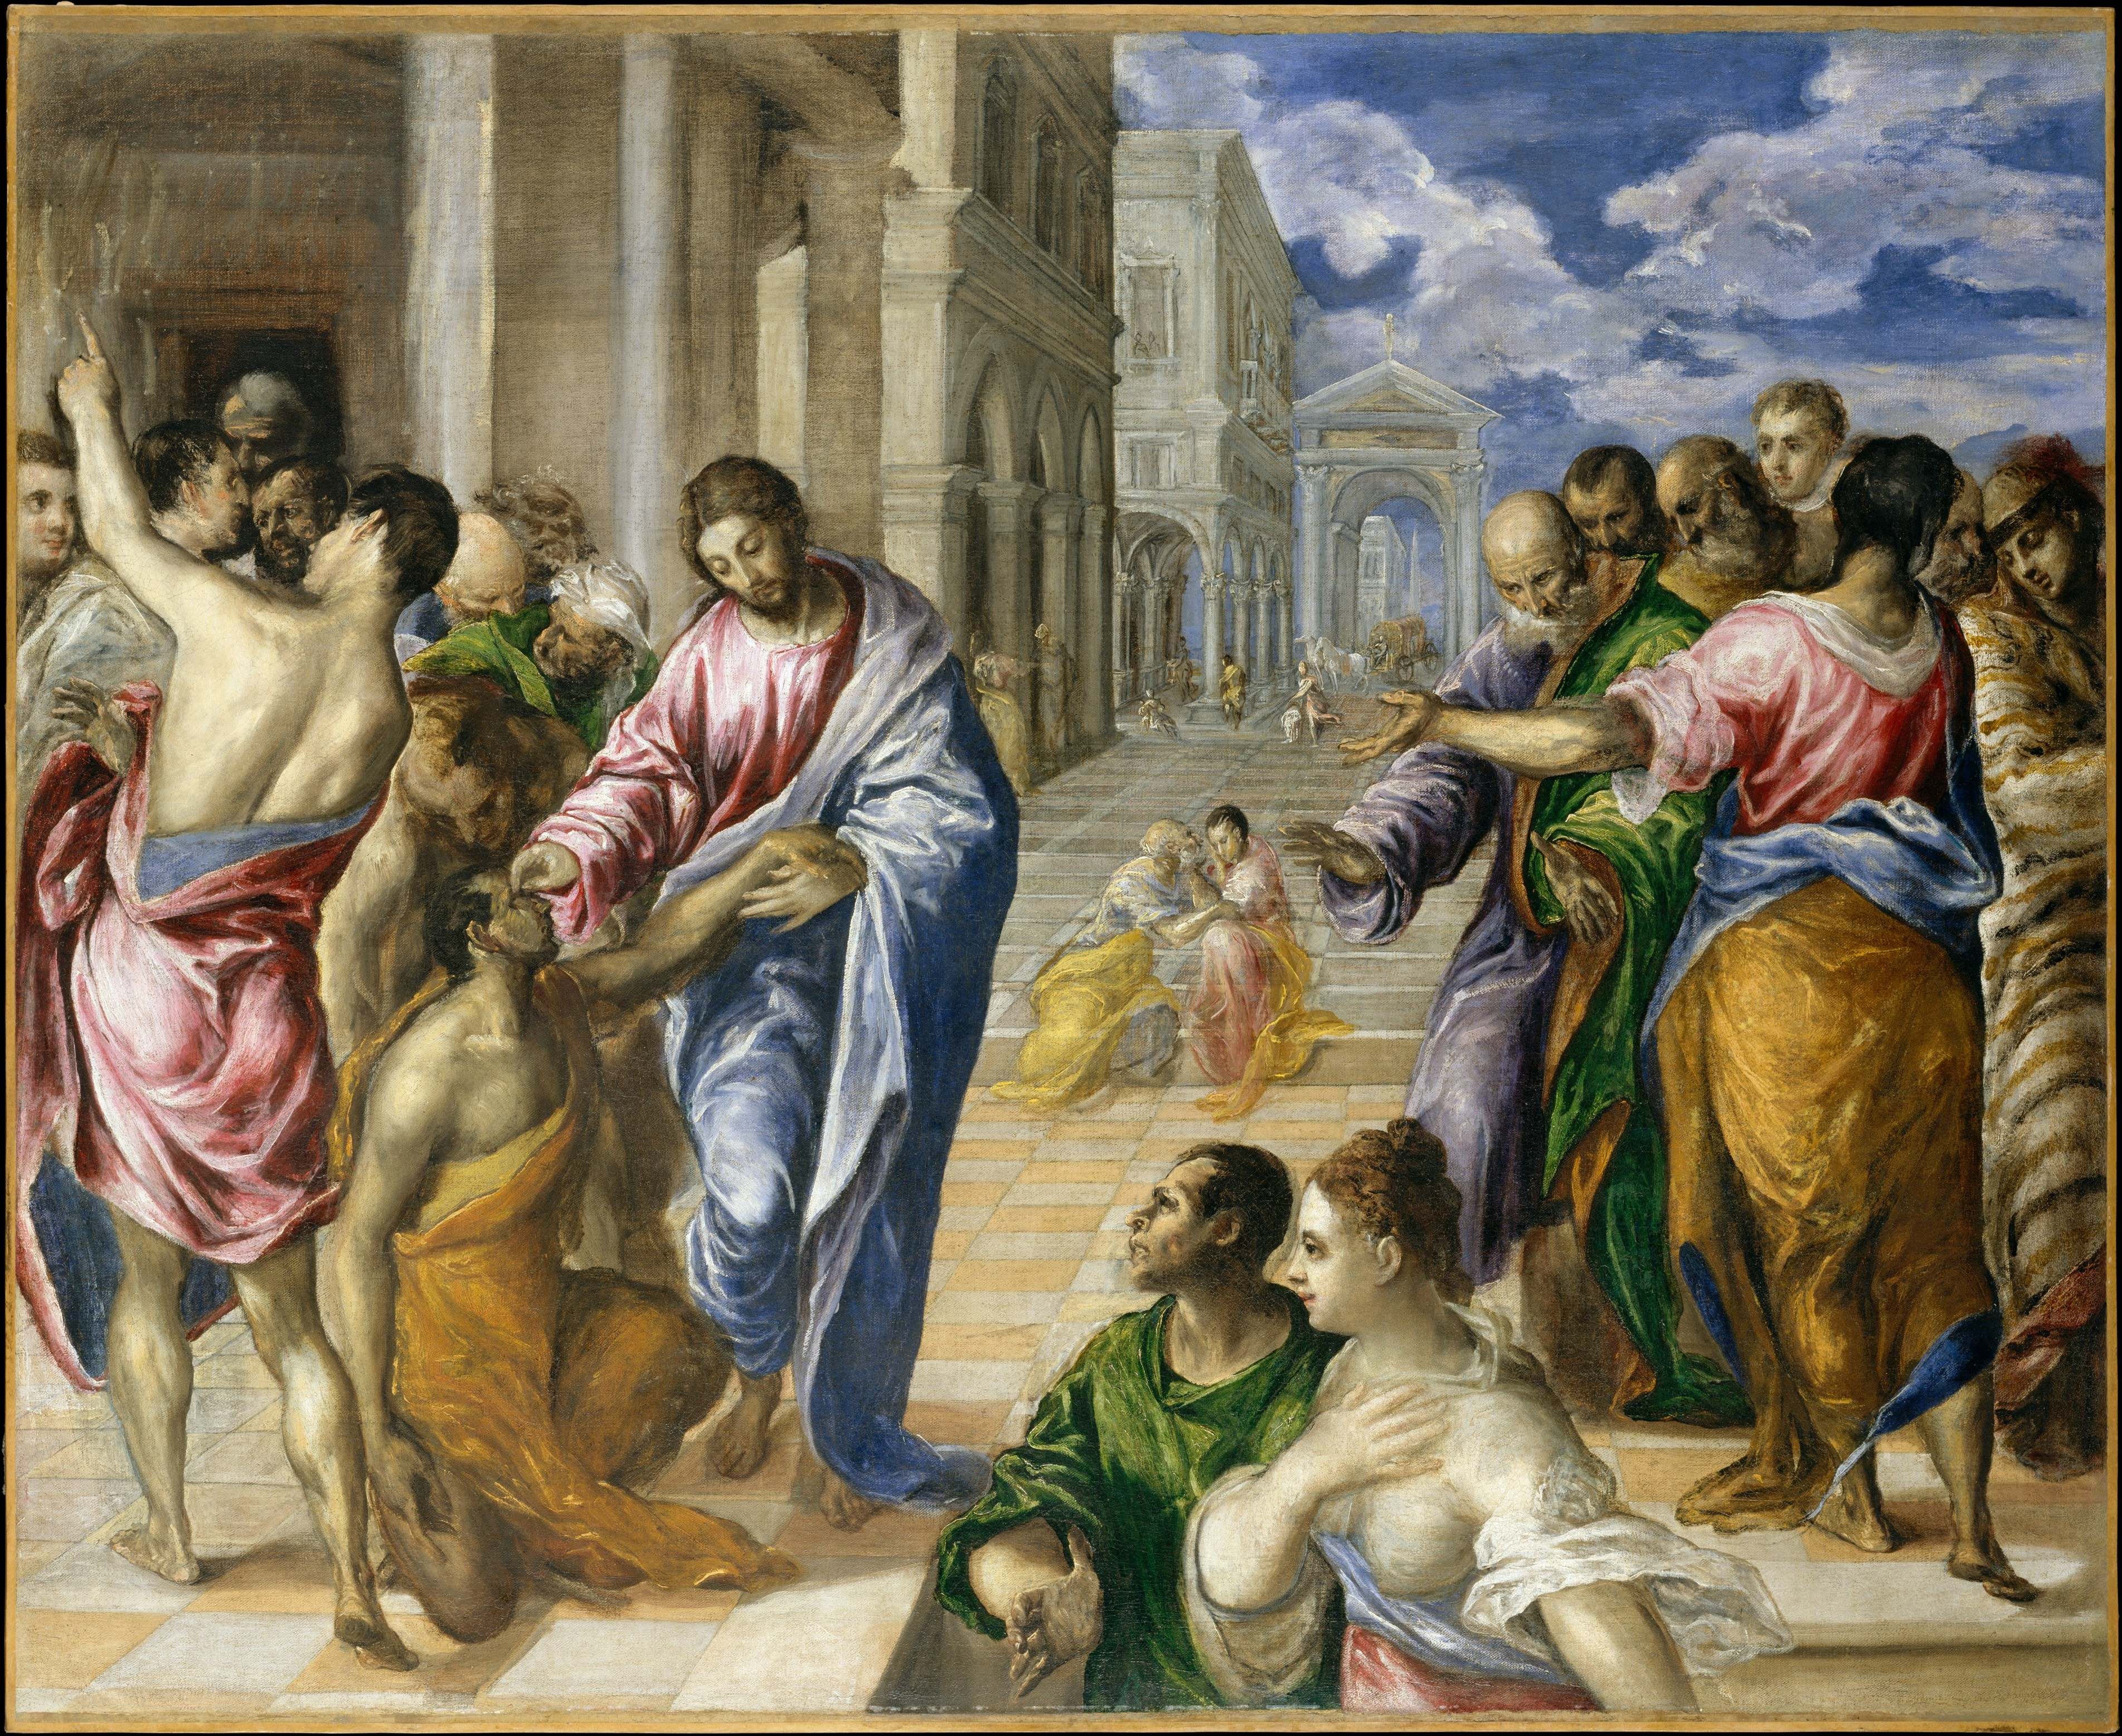 El Greco (Domenikos Theotokopoulos) | Christ Healing the Blind | The Met